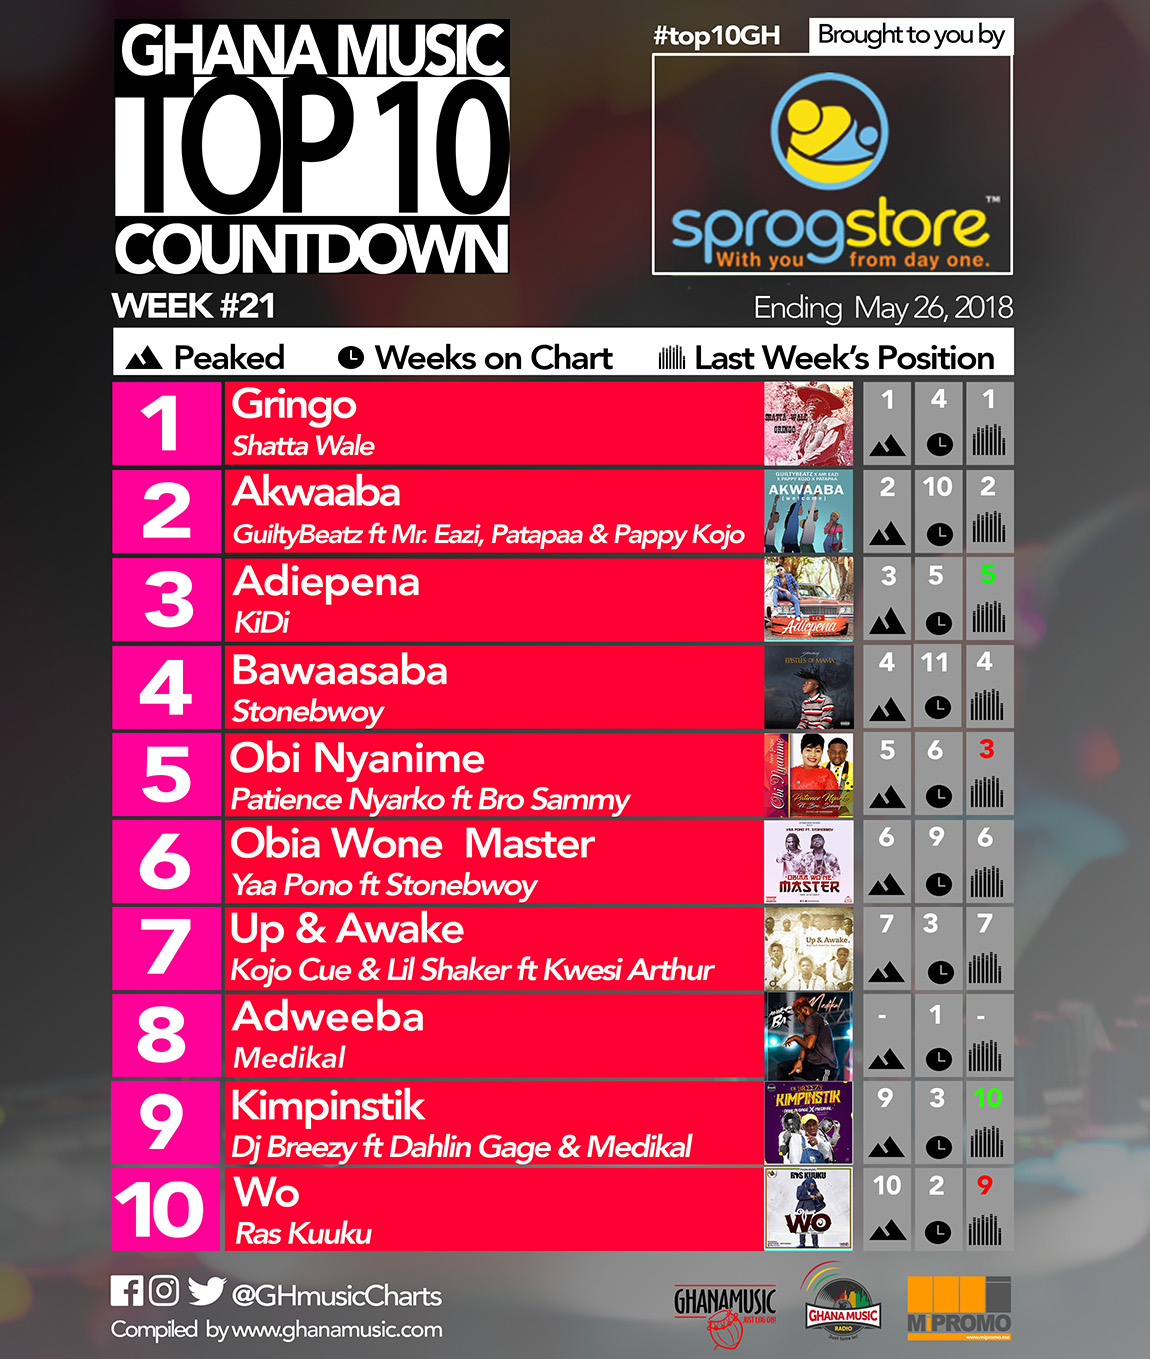 Week #21: Ghana Music Top 10 Countdown